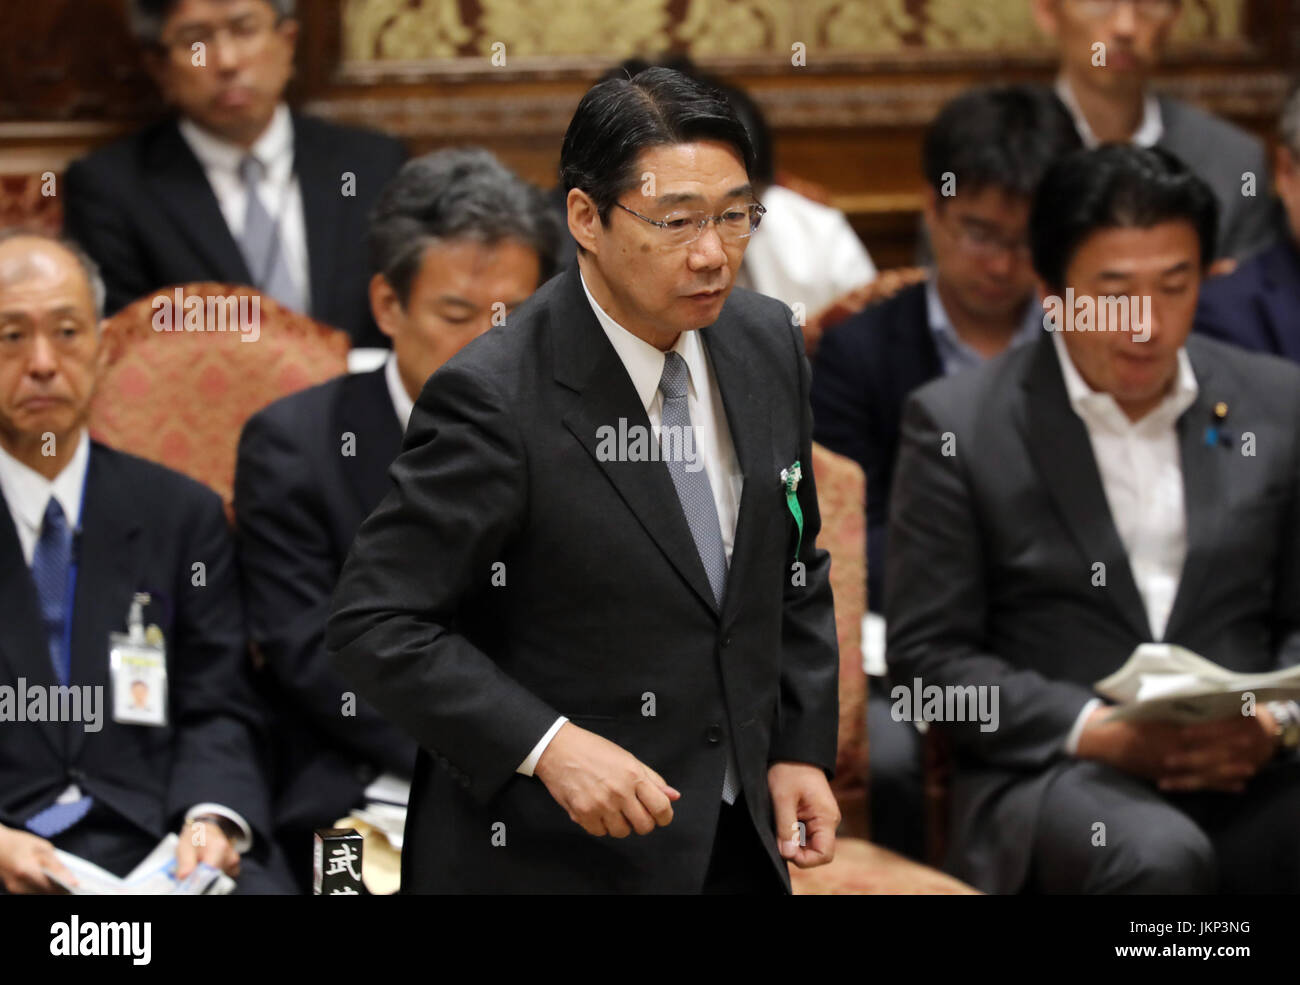 Tokyo, Japan. 24th July, 2017. Former Japanese Education Minister Kihei Maekawa answers a question to an opposition - Stock Image